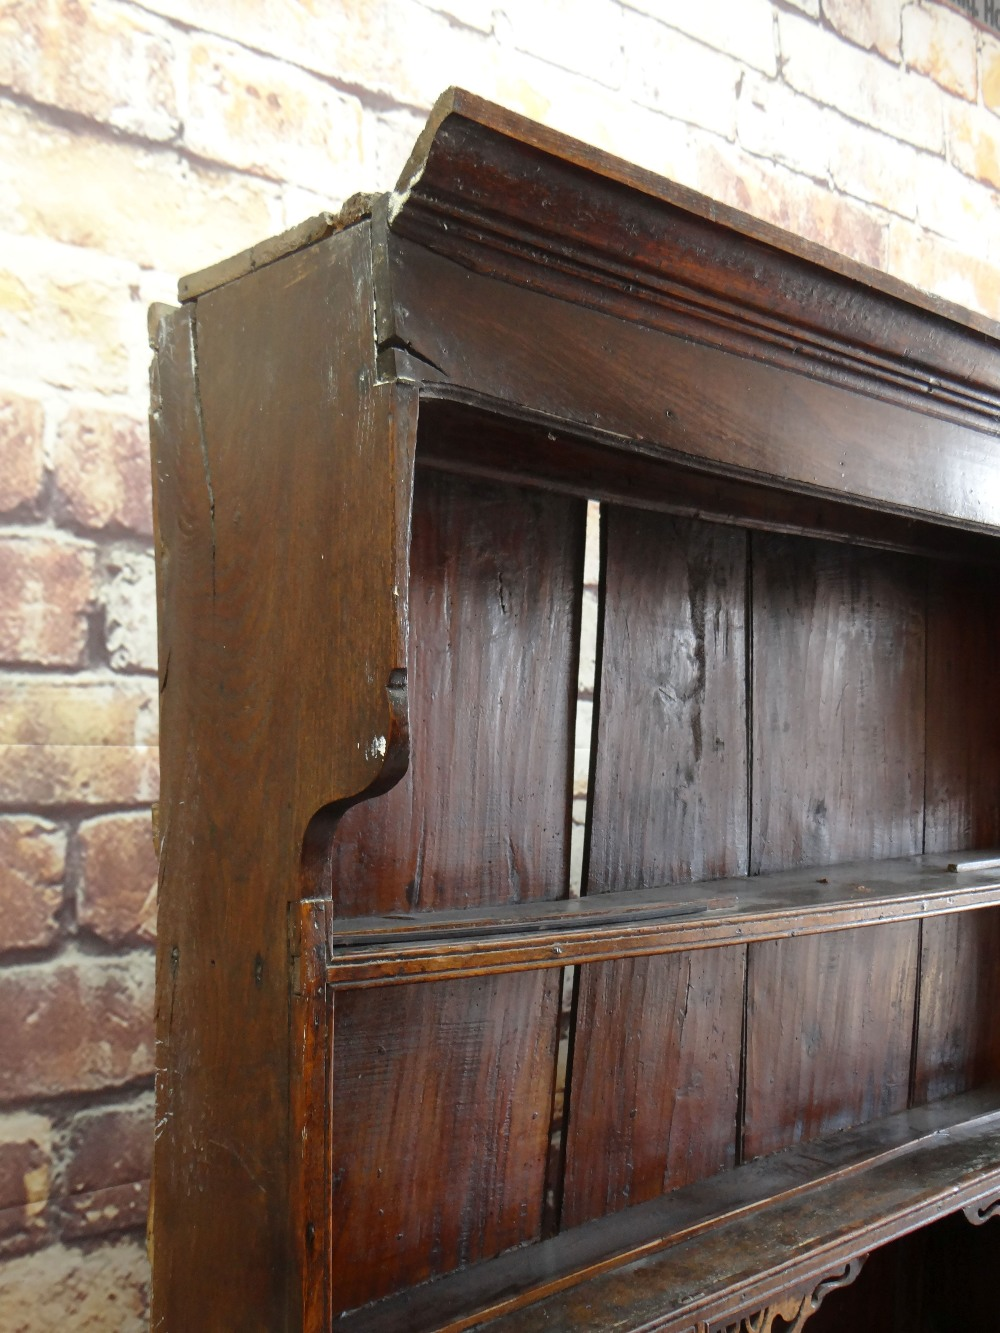 A SMALL CHARACTERFUL OAK NORTH WALES CUPBOARD-BASE WELSH DRESSER circa 1770-1800 having a base of - Image 7 of 26